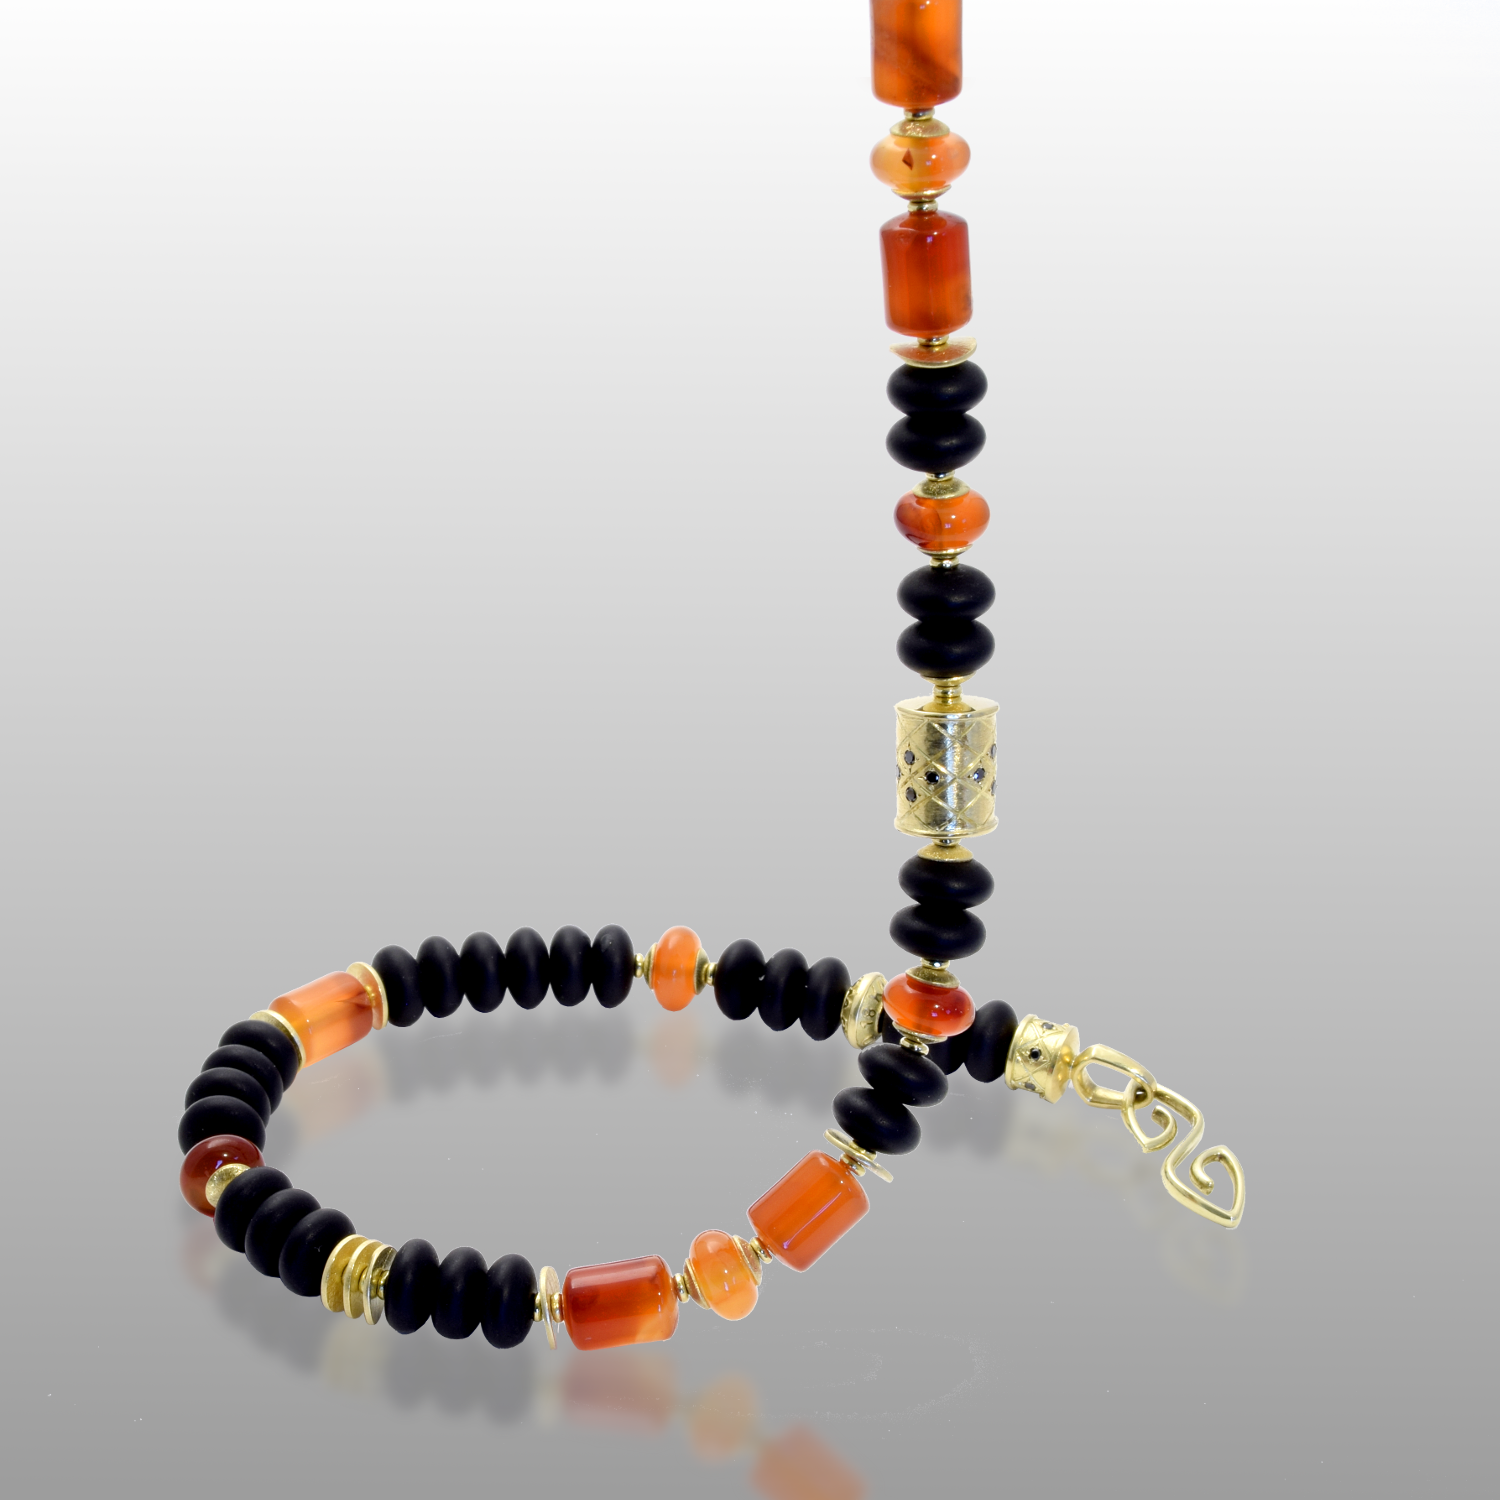 Necklace 'Hawaii' with 18k Gold, Carnelian and Onyx Beads, 18k Gold Signature Clasp with black Diamonds by Pratima Design Fine Art Jewelry